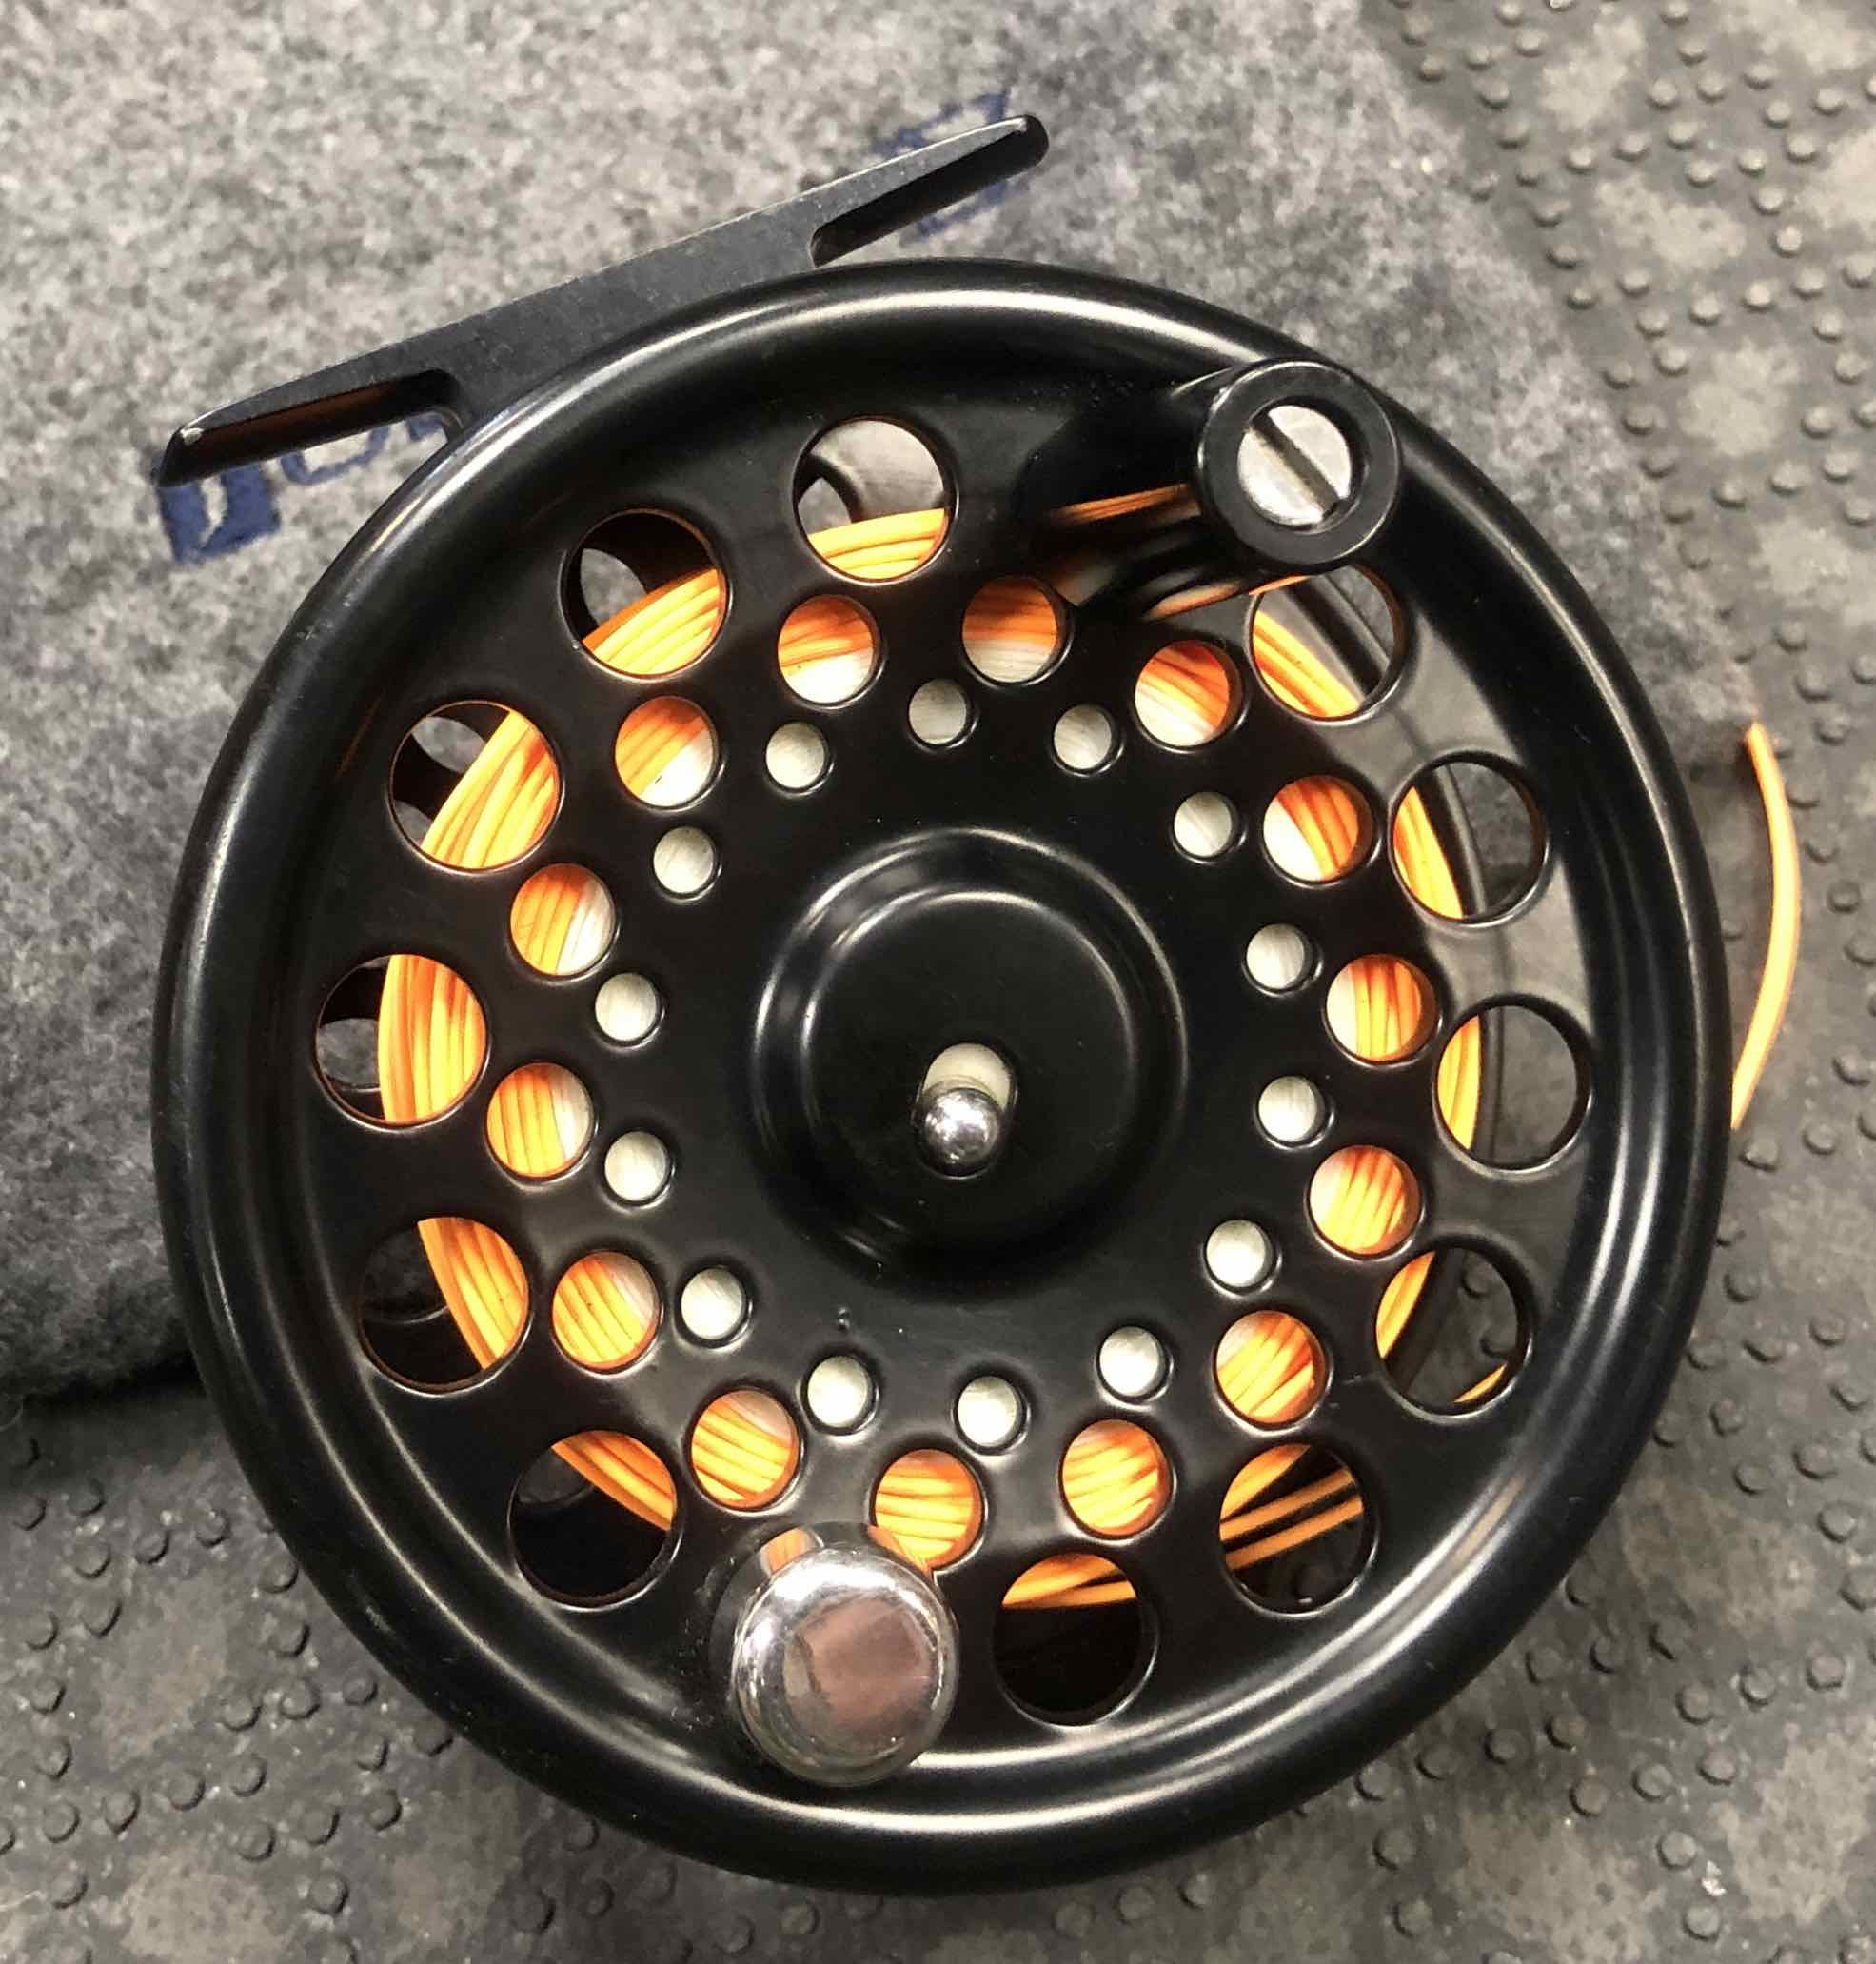 Solitude Harris Reel Company Fly Reel - Made in USA - C/W Fly Line - GREAT SHAPE!